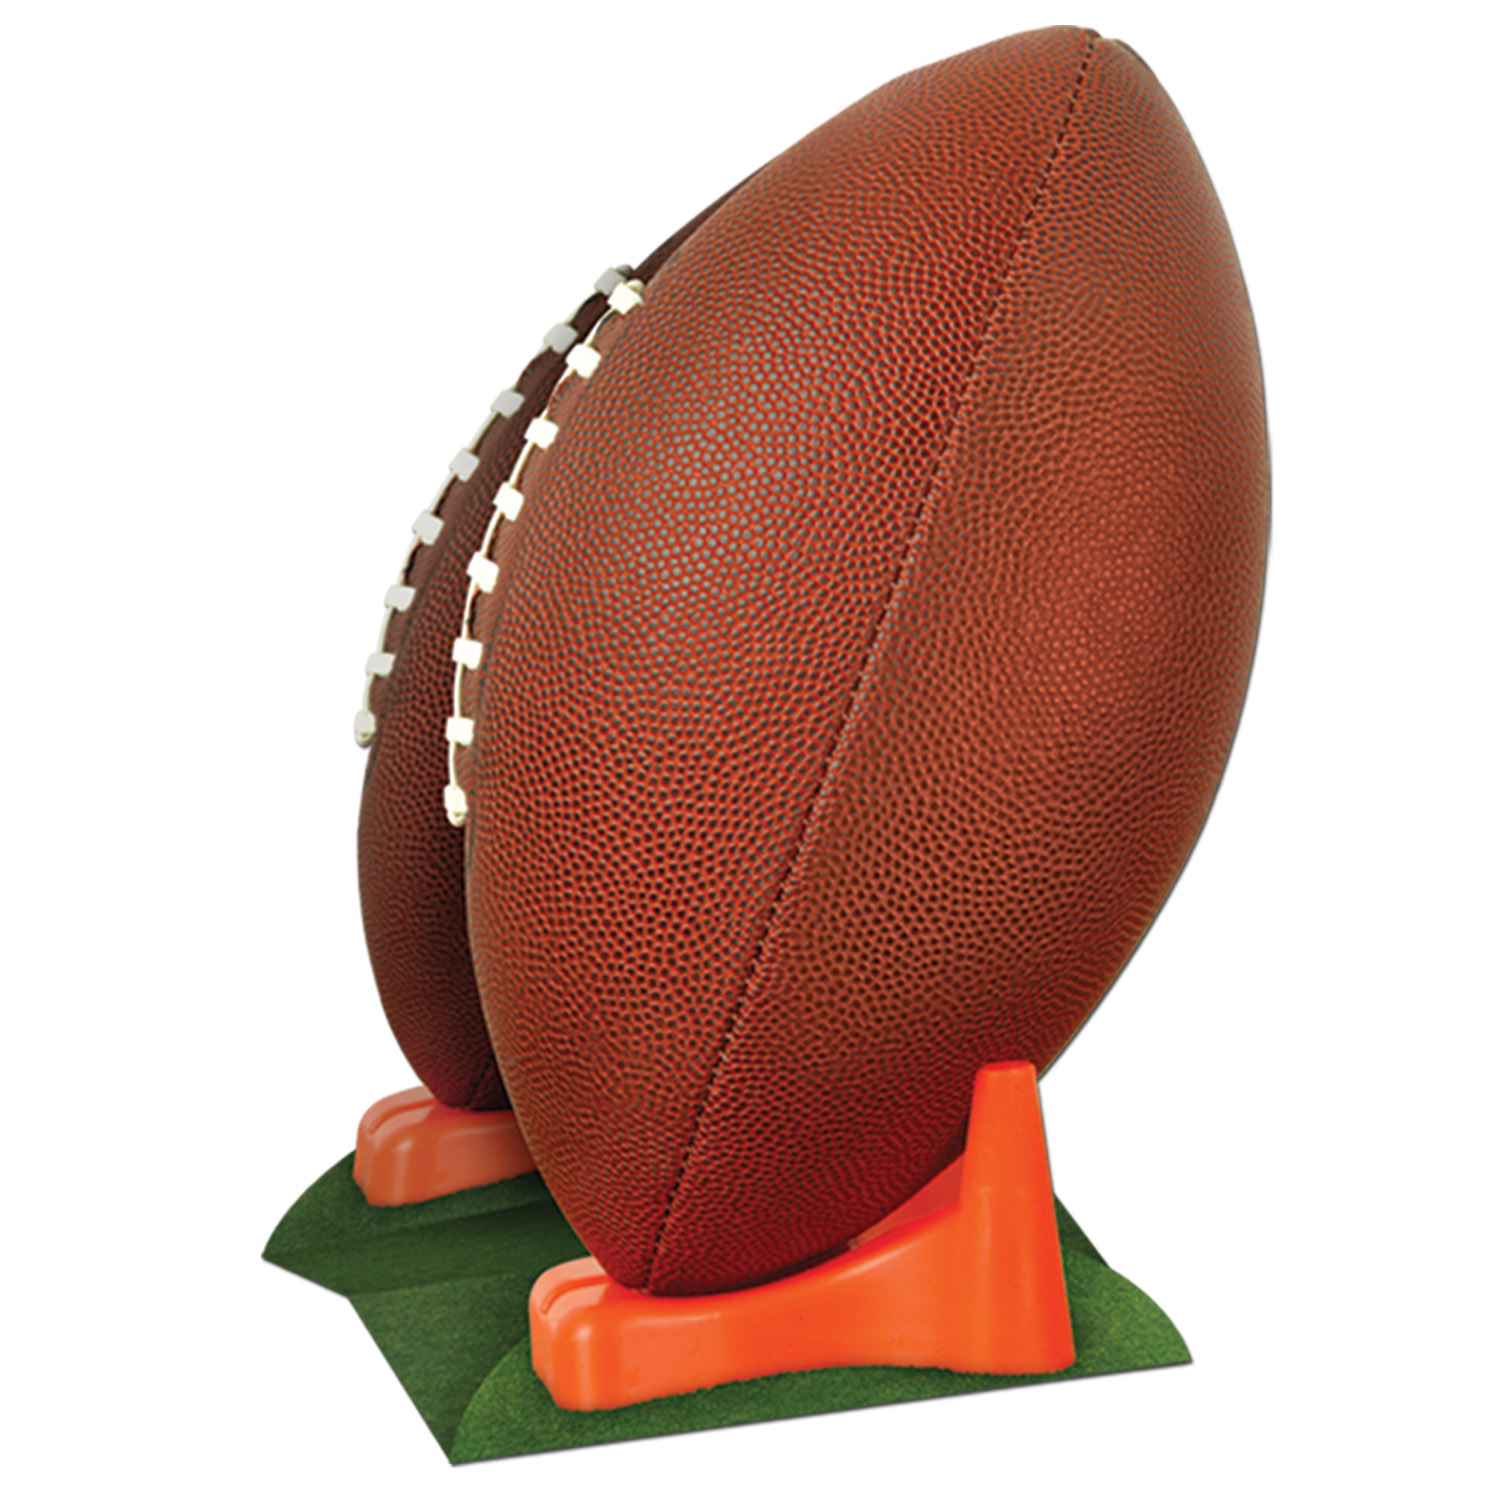 3-D Football Centerpiece (Pack of 12) Football, Super bowl, football cutout, football centerpiece, table centerpiece